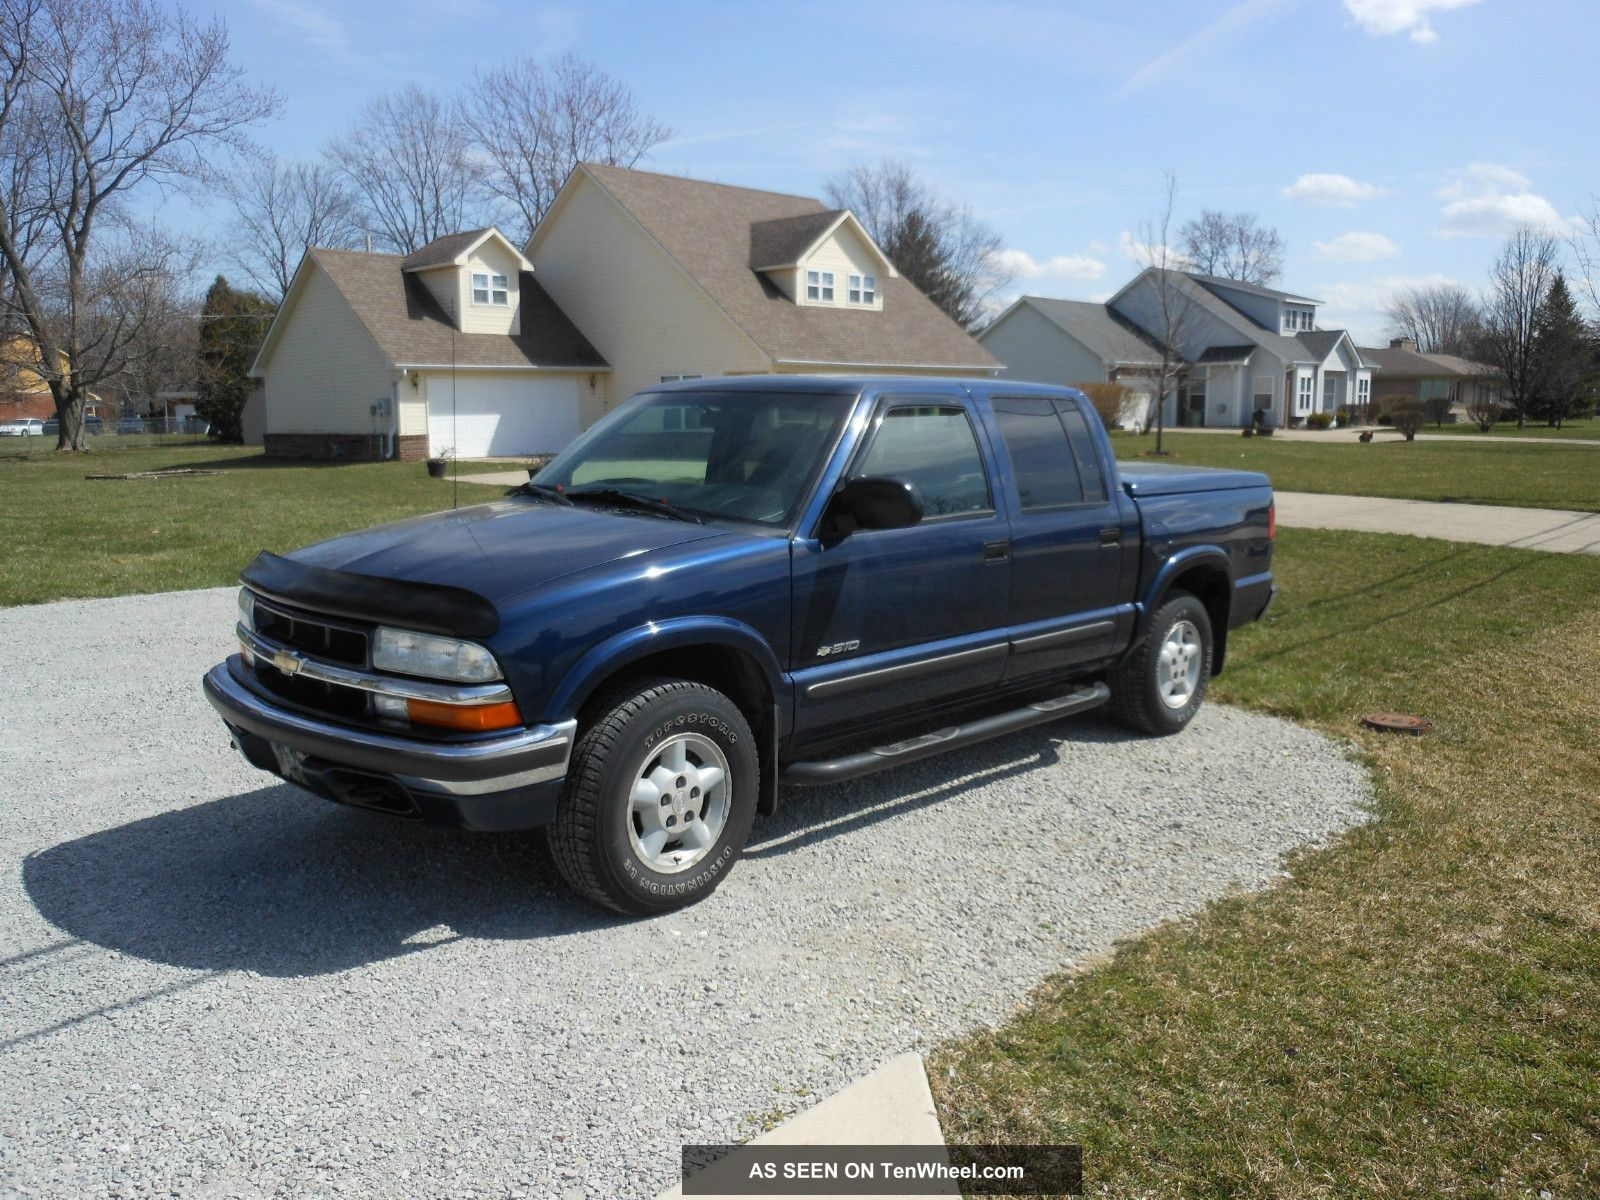 2002 chevrolet s10 zr5 crew cab pickup 4 door 4 3l v6 1 owner. Black Bedroom Furniture Sets. Home Design Ideas